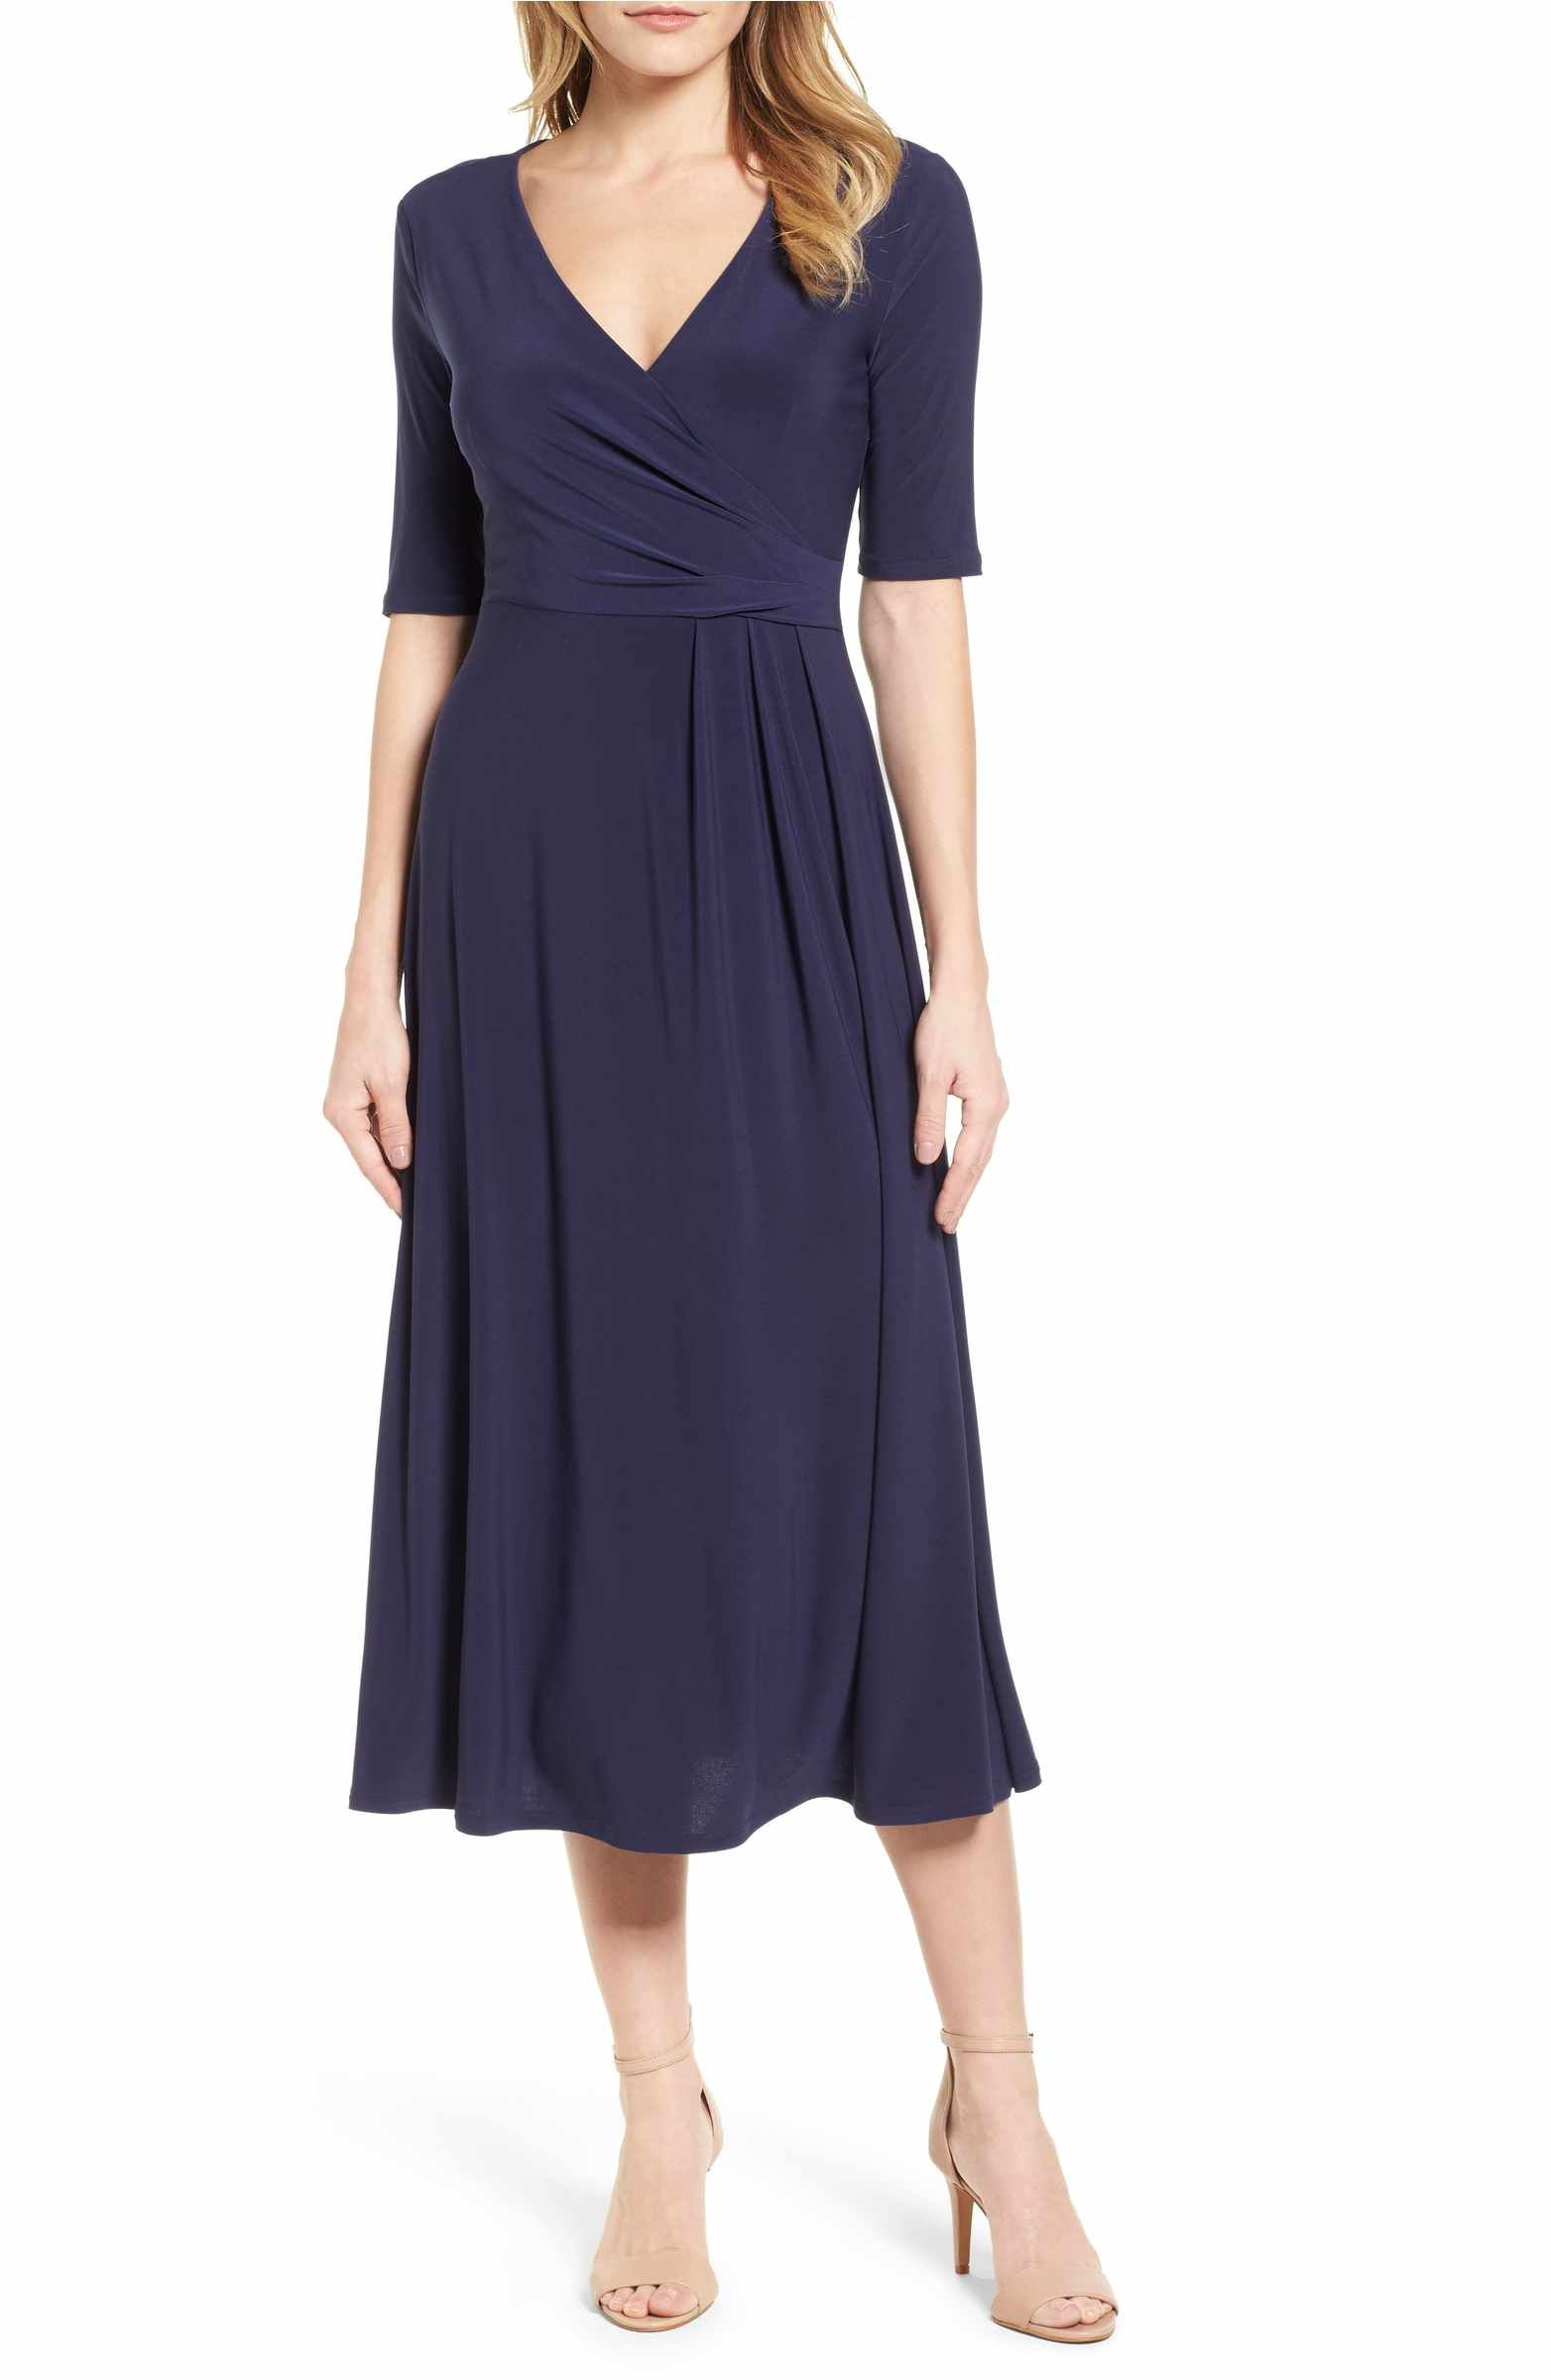 Laura Faux Wrap Midi Dress | Midi dresses, Wraps and Wrap style